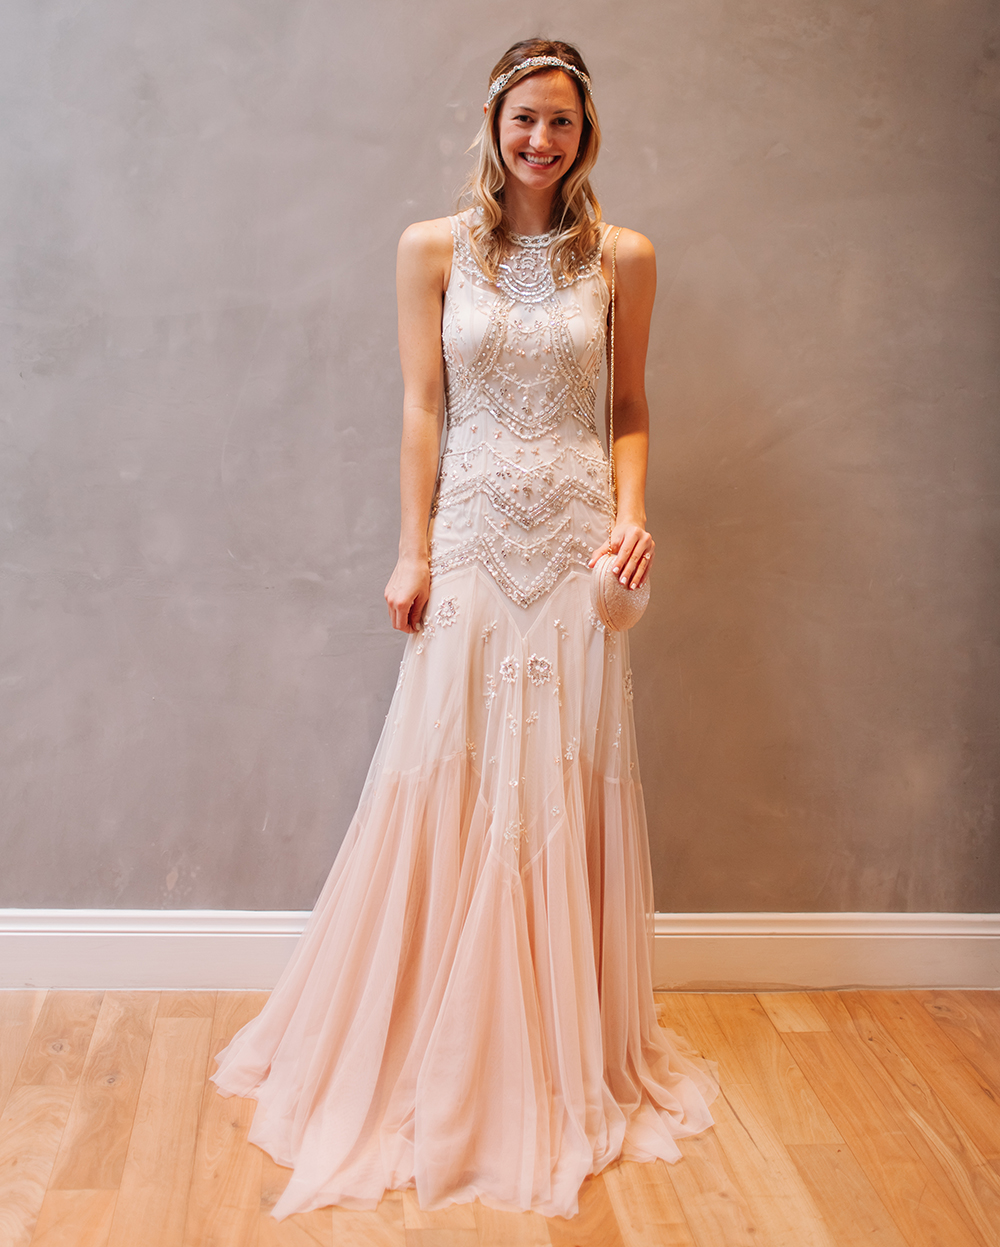 Attirant Wedding Dresses In Texas 9